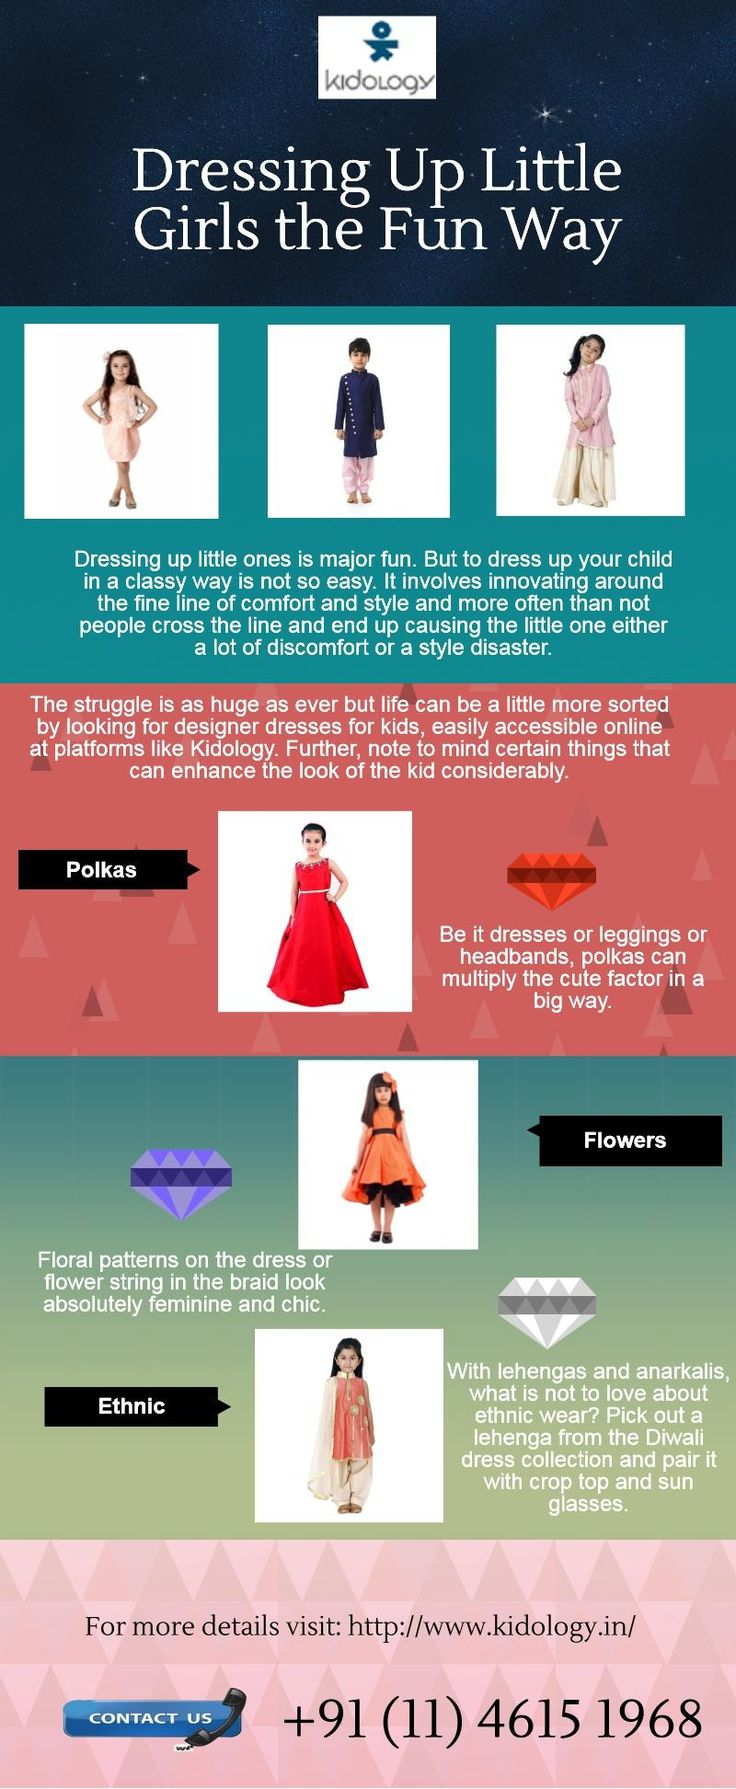 The struggle is as huge as ever but life can be a little more sorted by looking for designer dresses for kids, easily accessible online at platforms like Kidology. Pick out a lehenga from the Diwali dress collection and pair it with crop top and sun glasses.